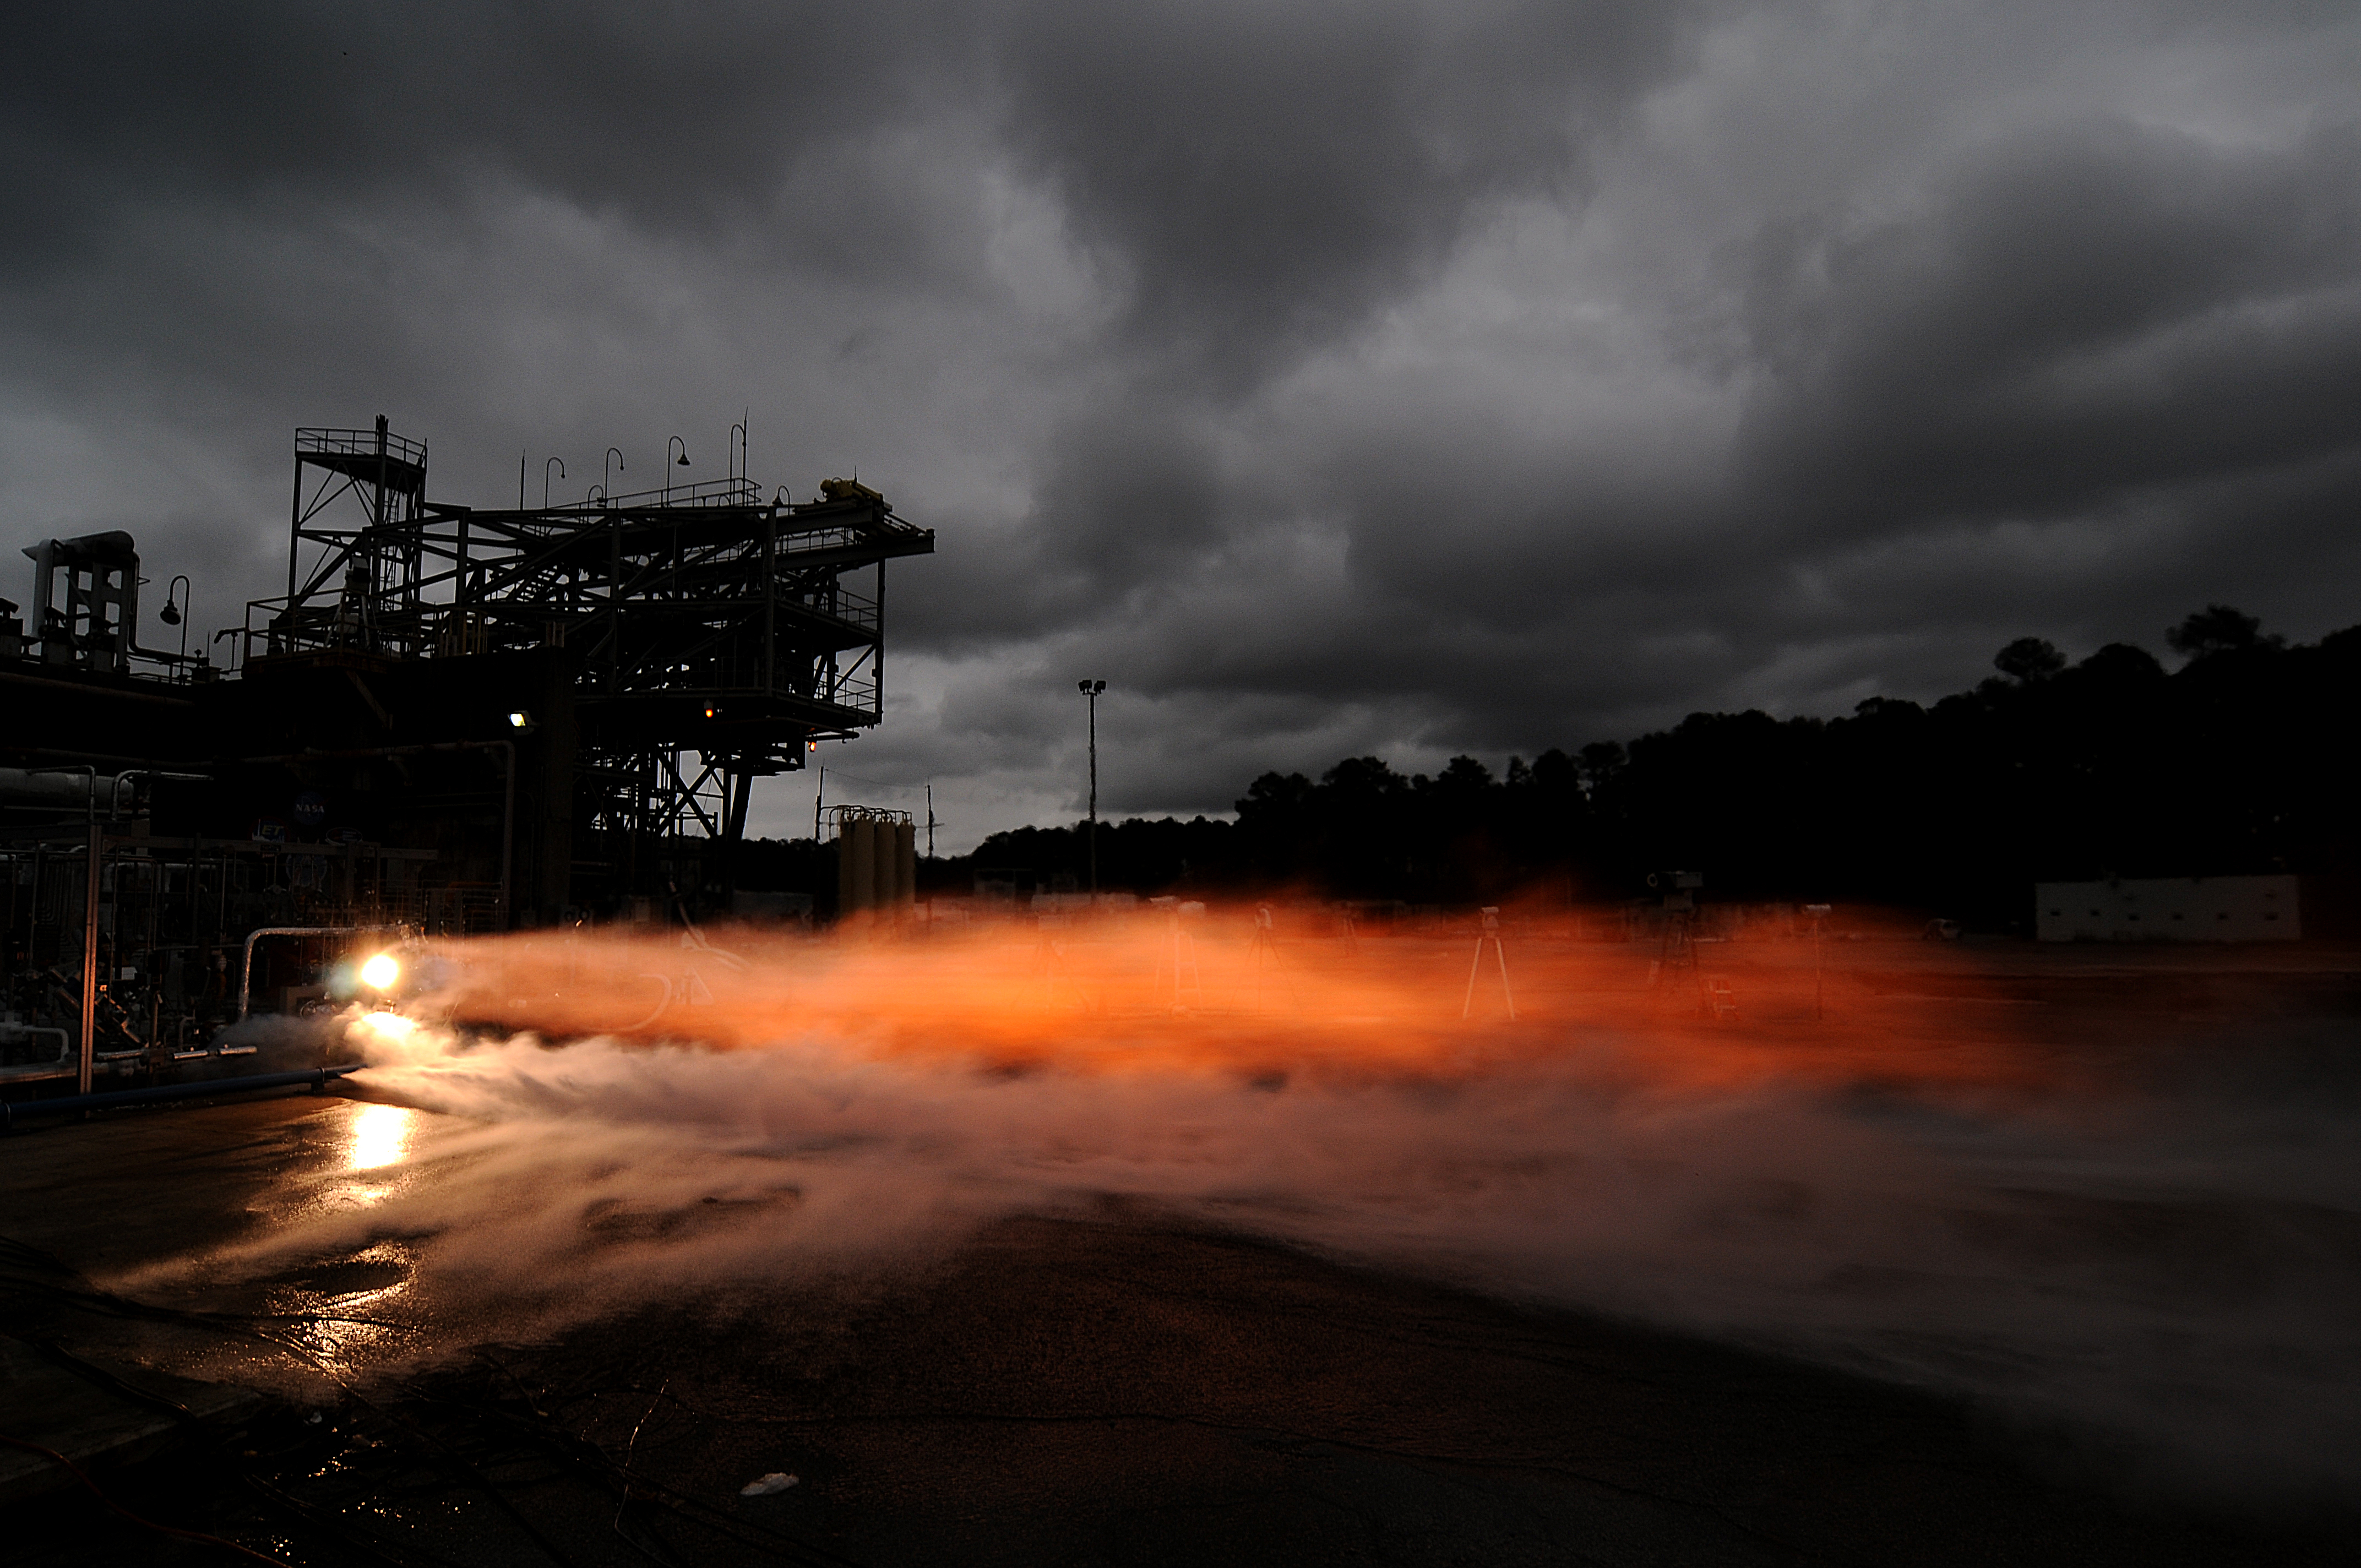 During a series of test firings at NASA's Marshall Space Flight Center in Huntsville, Alabama, 3-D printed rocket engine parts worked together successful under the same conditions experience inside rocket engines used in space. The turbopump was tested at full power, pumping 1,200 gallons of liquid hydrogen per minute and the injector produced 20,0000 pounds of thrust.